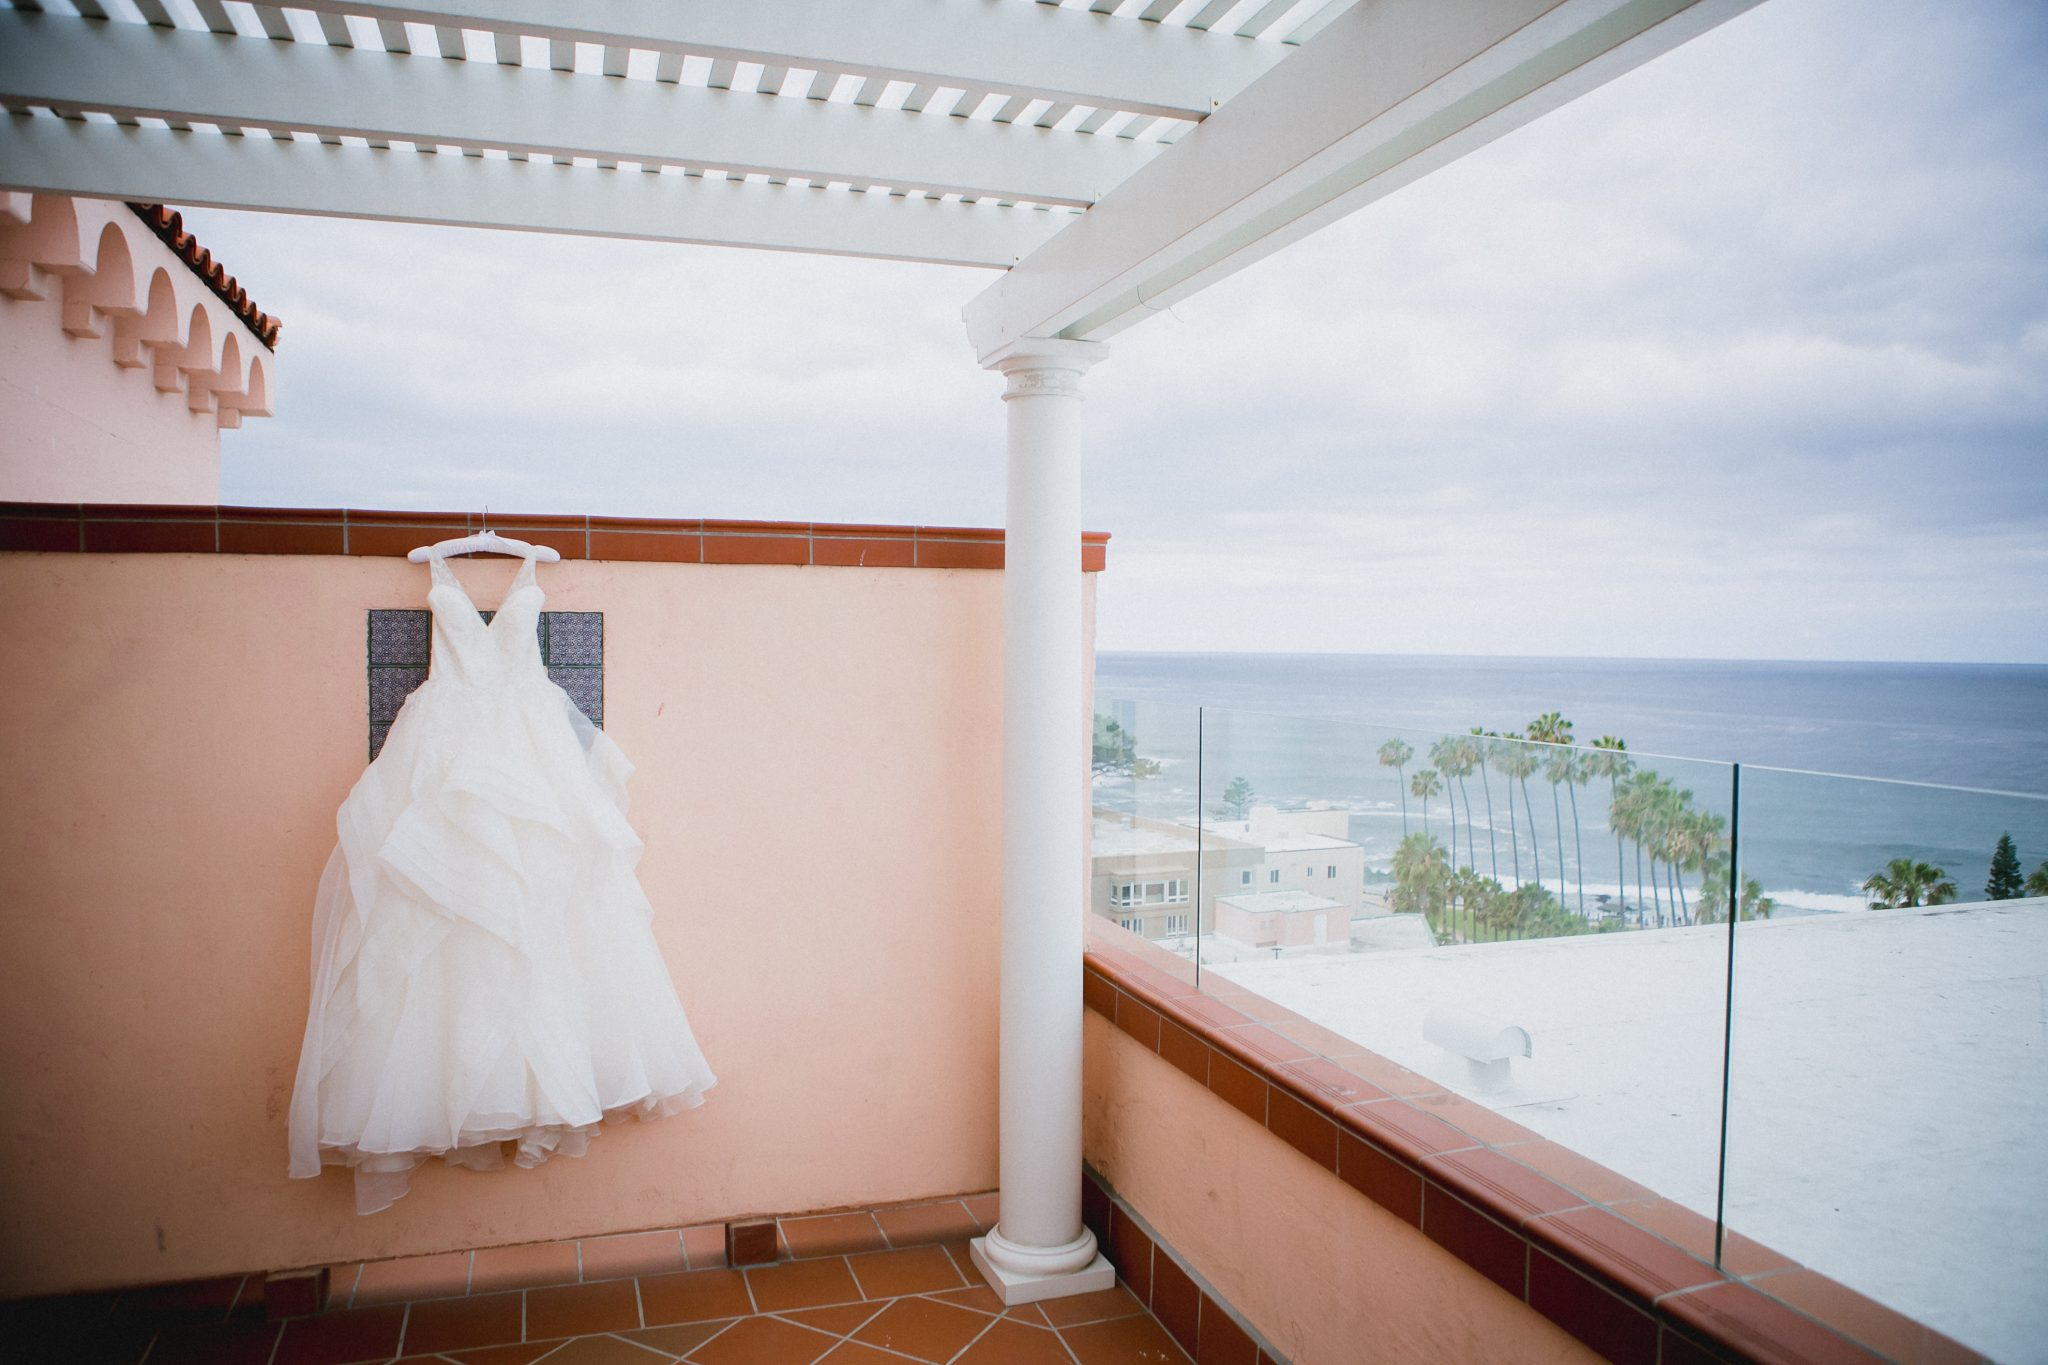 Wedding Dress hanging outside at La Valencia with ocean in background